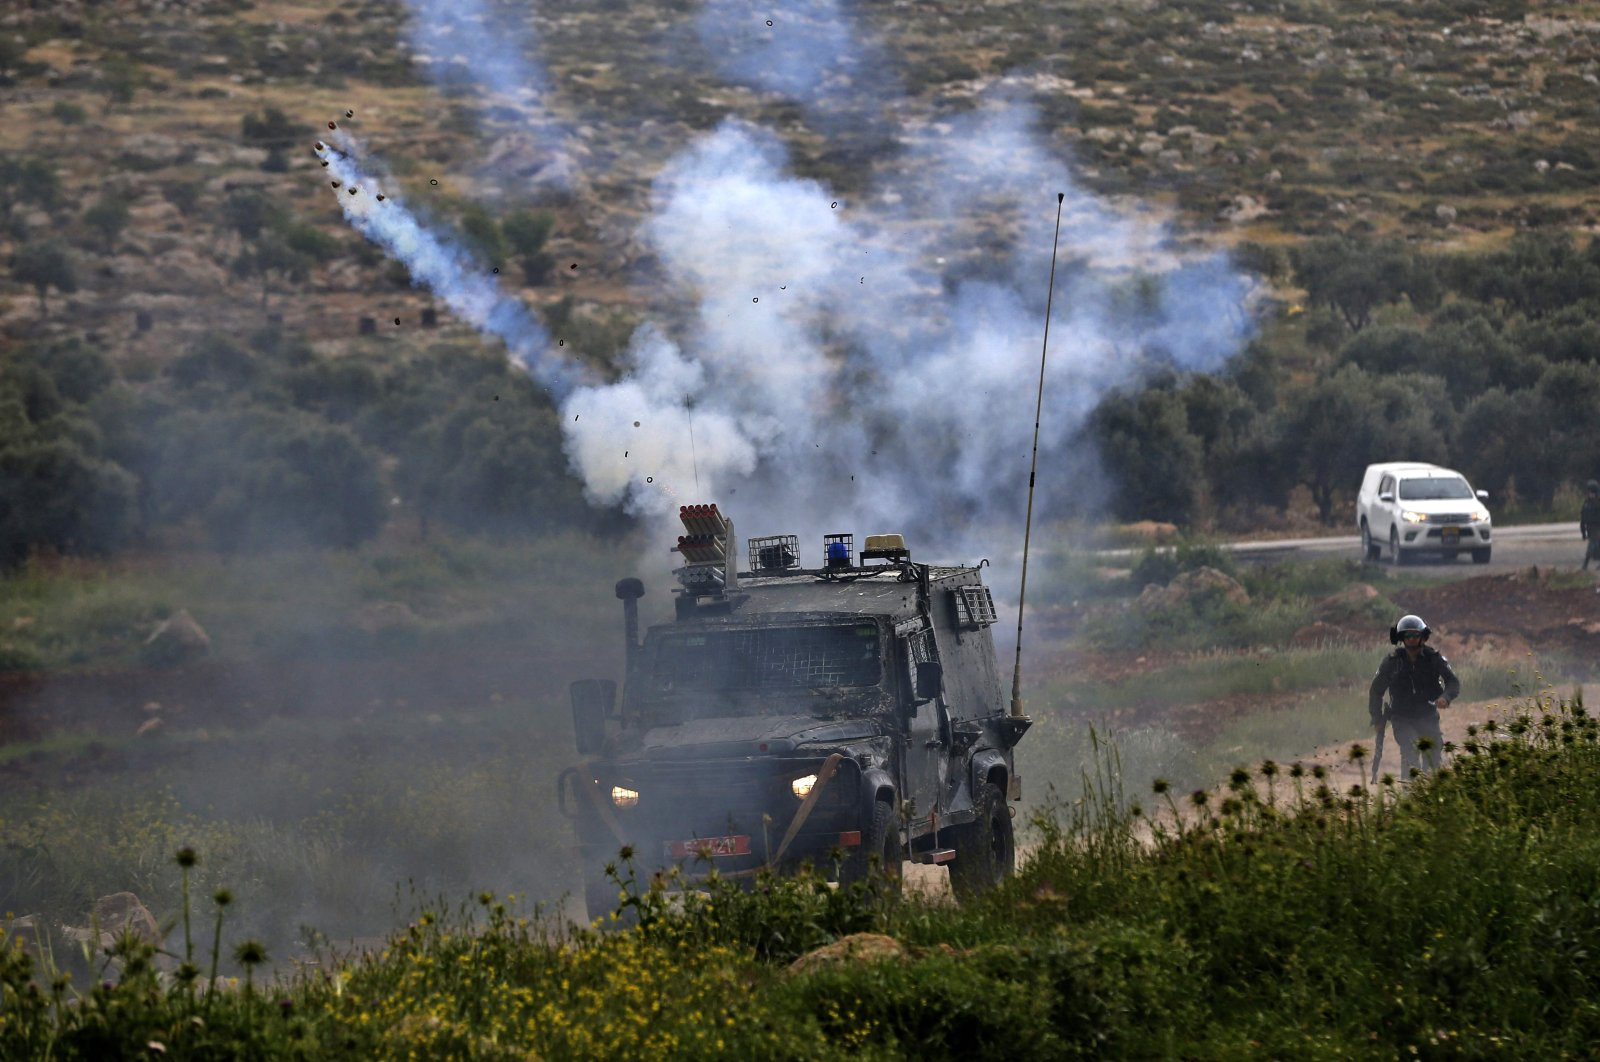 Tear gas is fired by Israeli forces against Palestinian protesters during clashes in the village of al-Mughayer near the Israeli-occupied West Bank city of Ramallah, April 2, 2021. (AFP Photo)